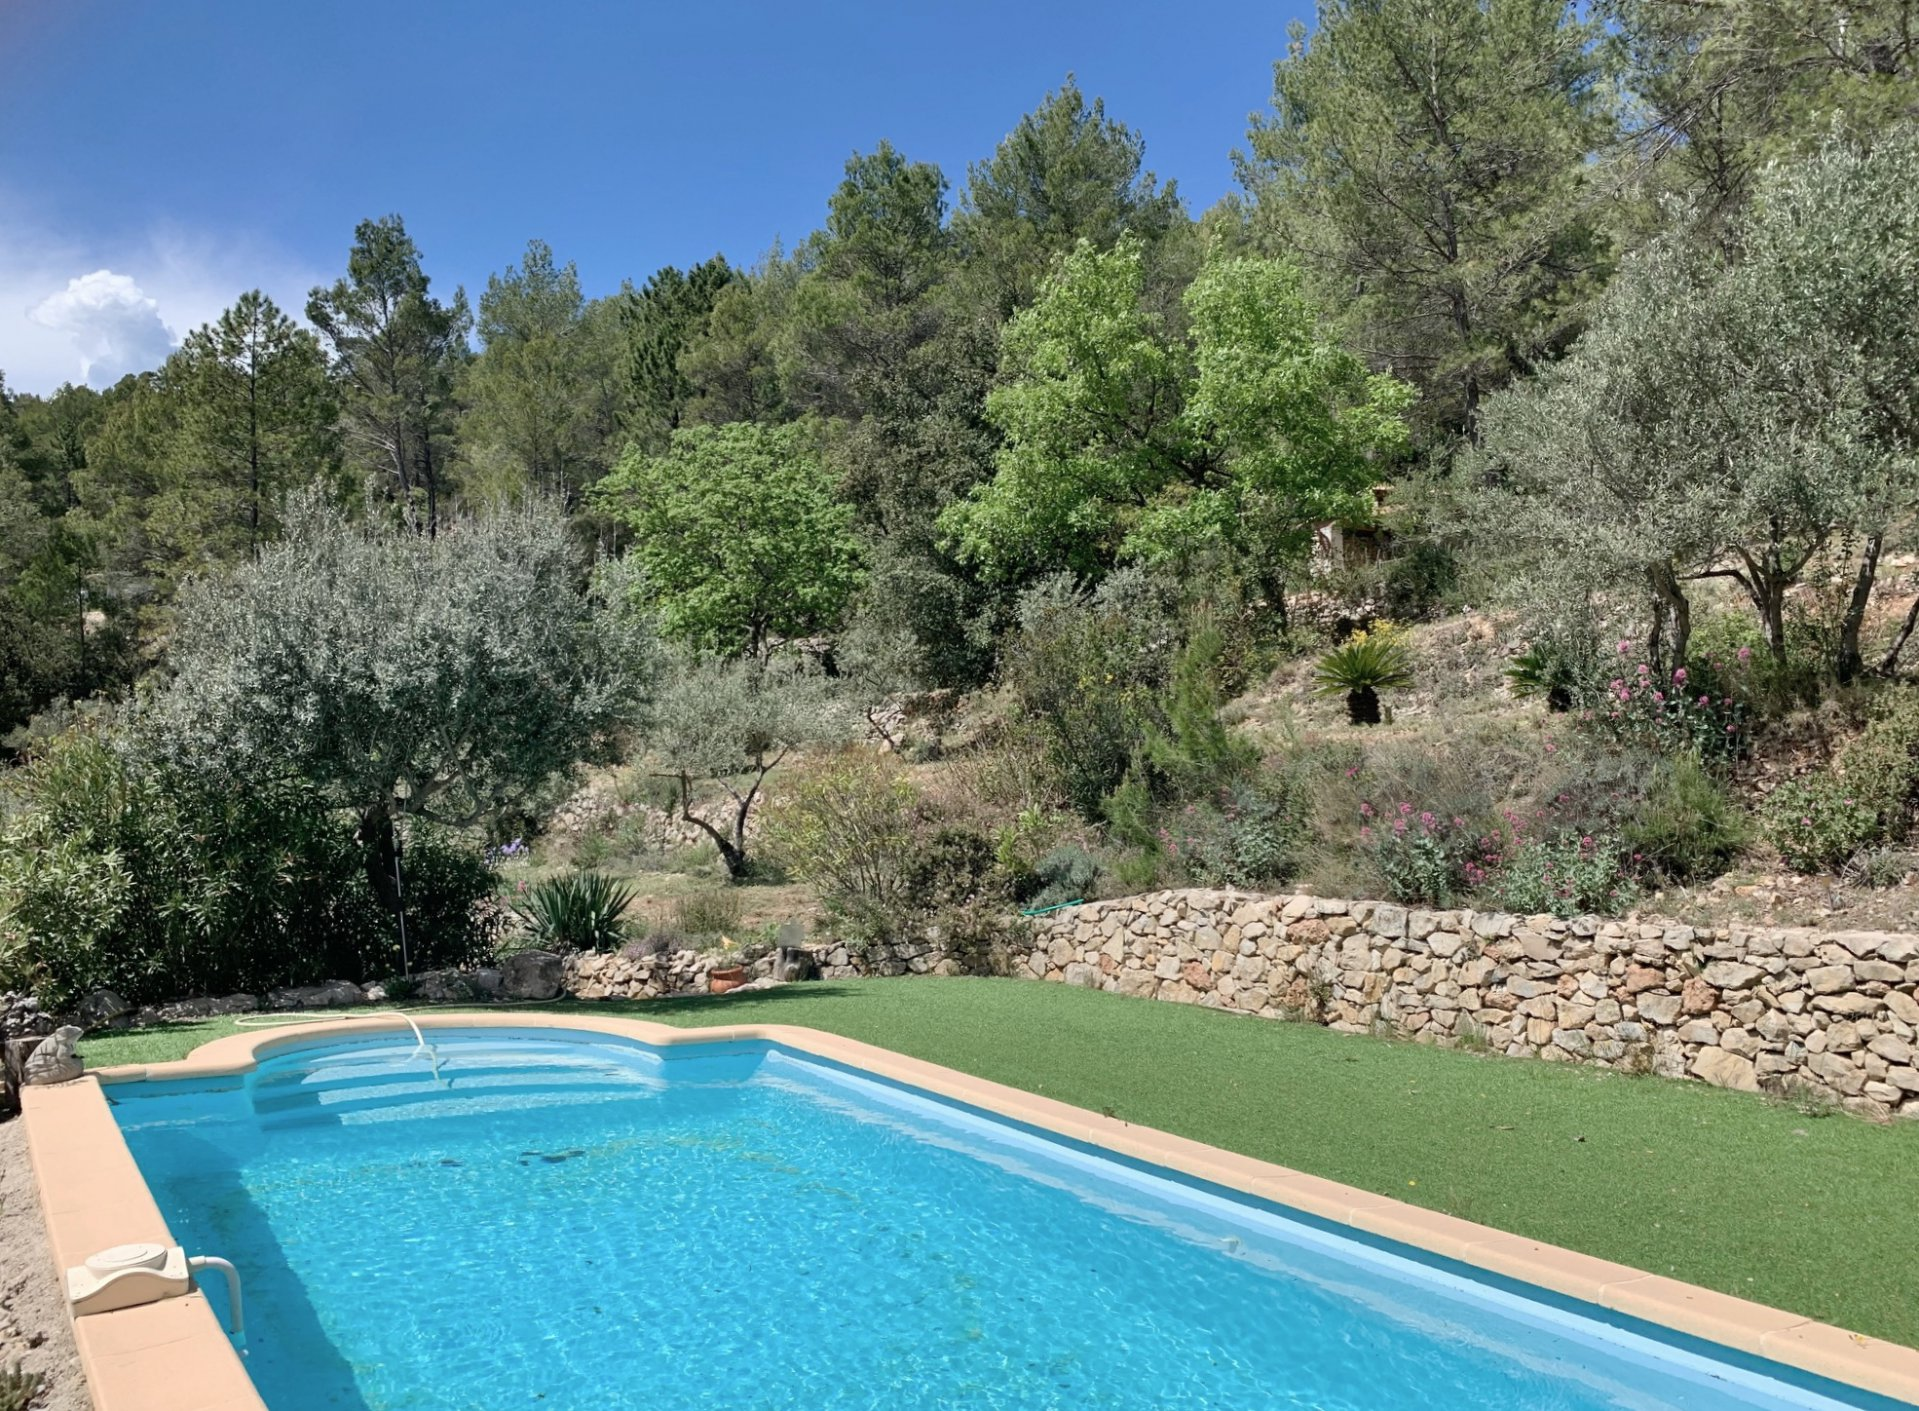 Villa with pool, guest appartment, beautiful ground and good views